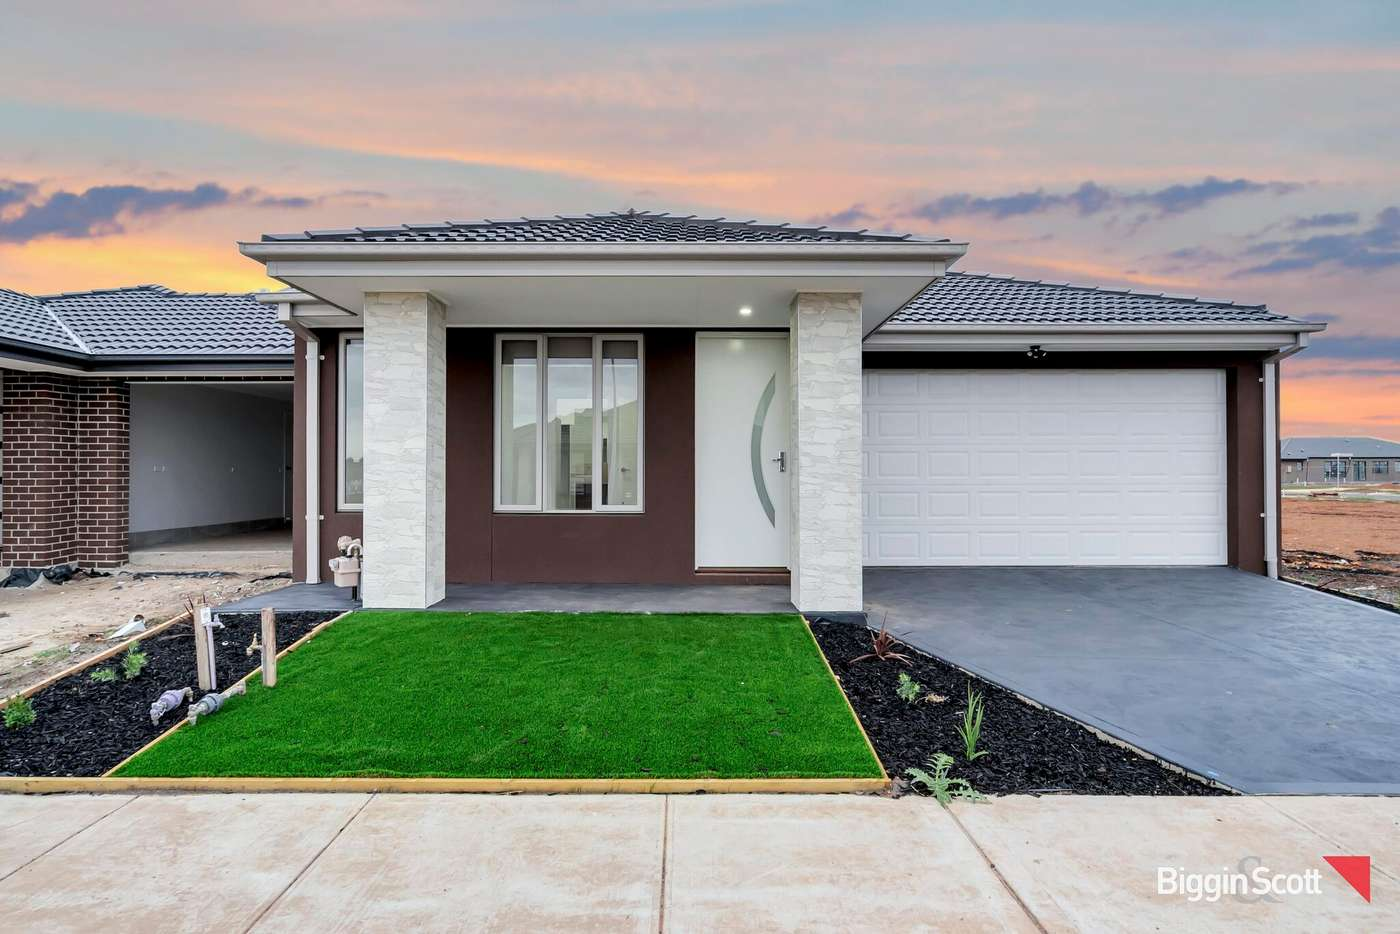 Main view of Homely house listing, 15 Midewin Way, Wyndham Vale VIC 3024